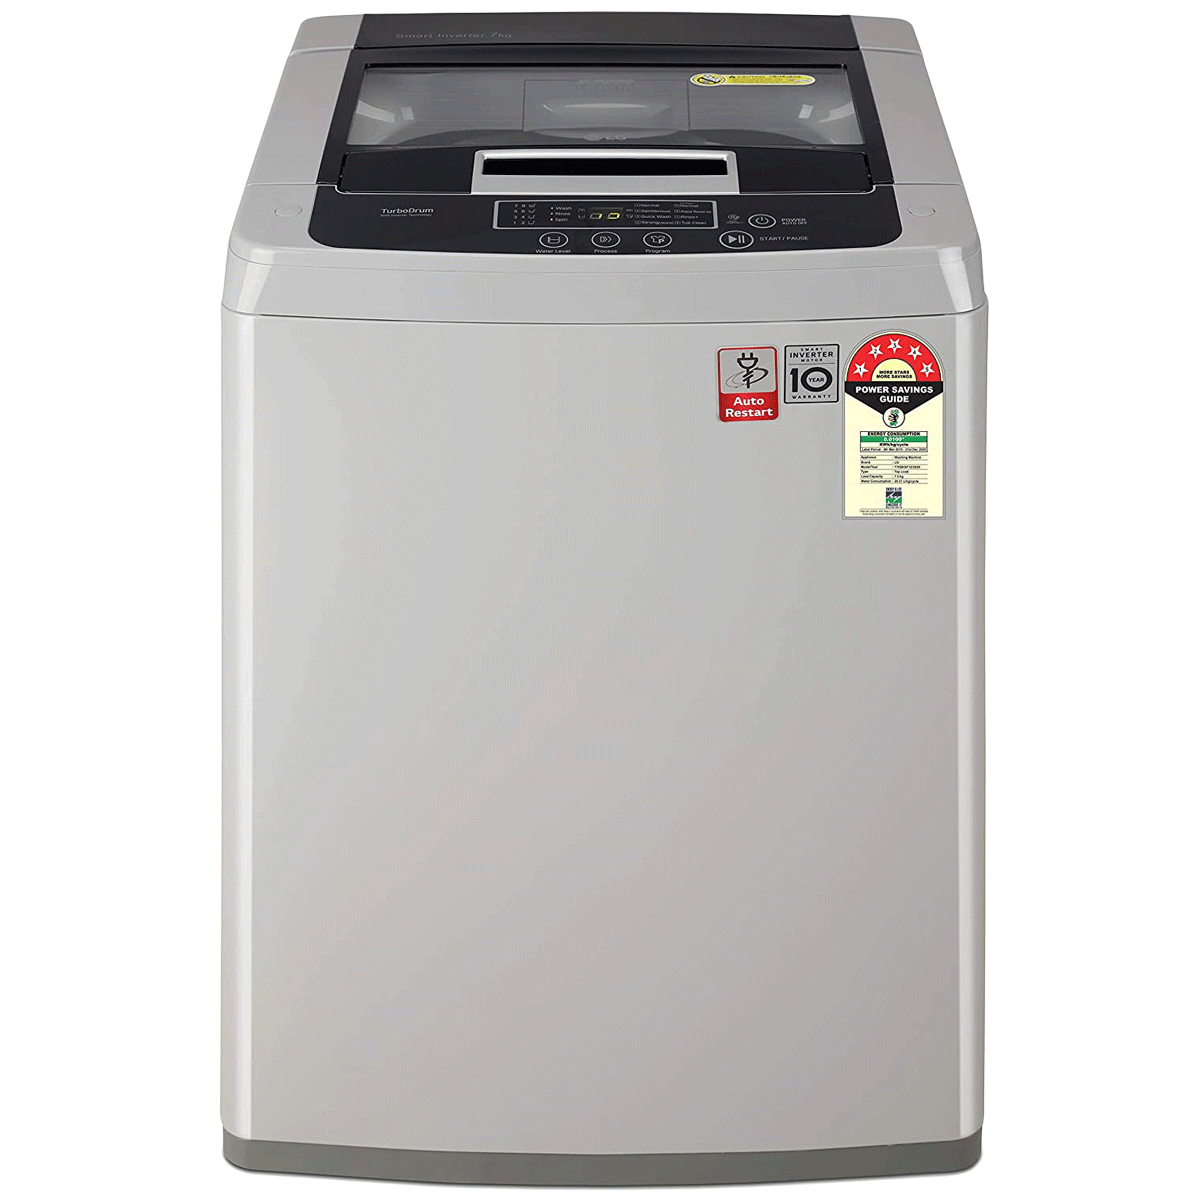 LG 7 kg 5 Star Fully Automatic Top Load Washing Machine (Smart Inverter Technology, T70SKSF1Z, Middle Free Silver)_1